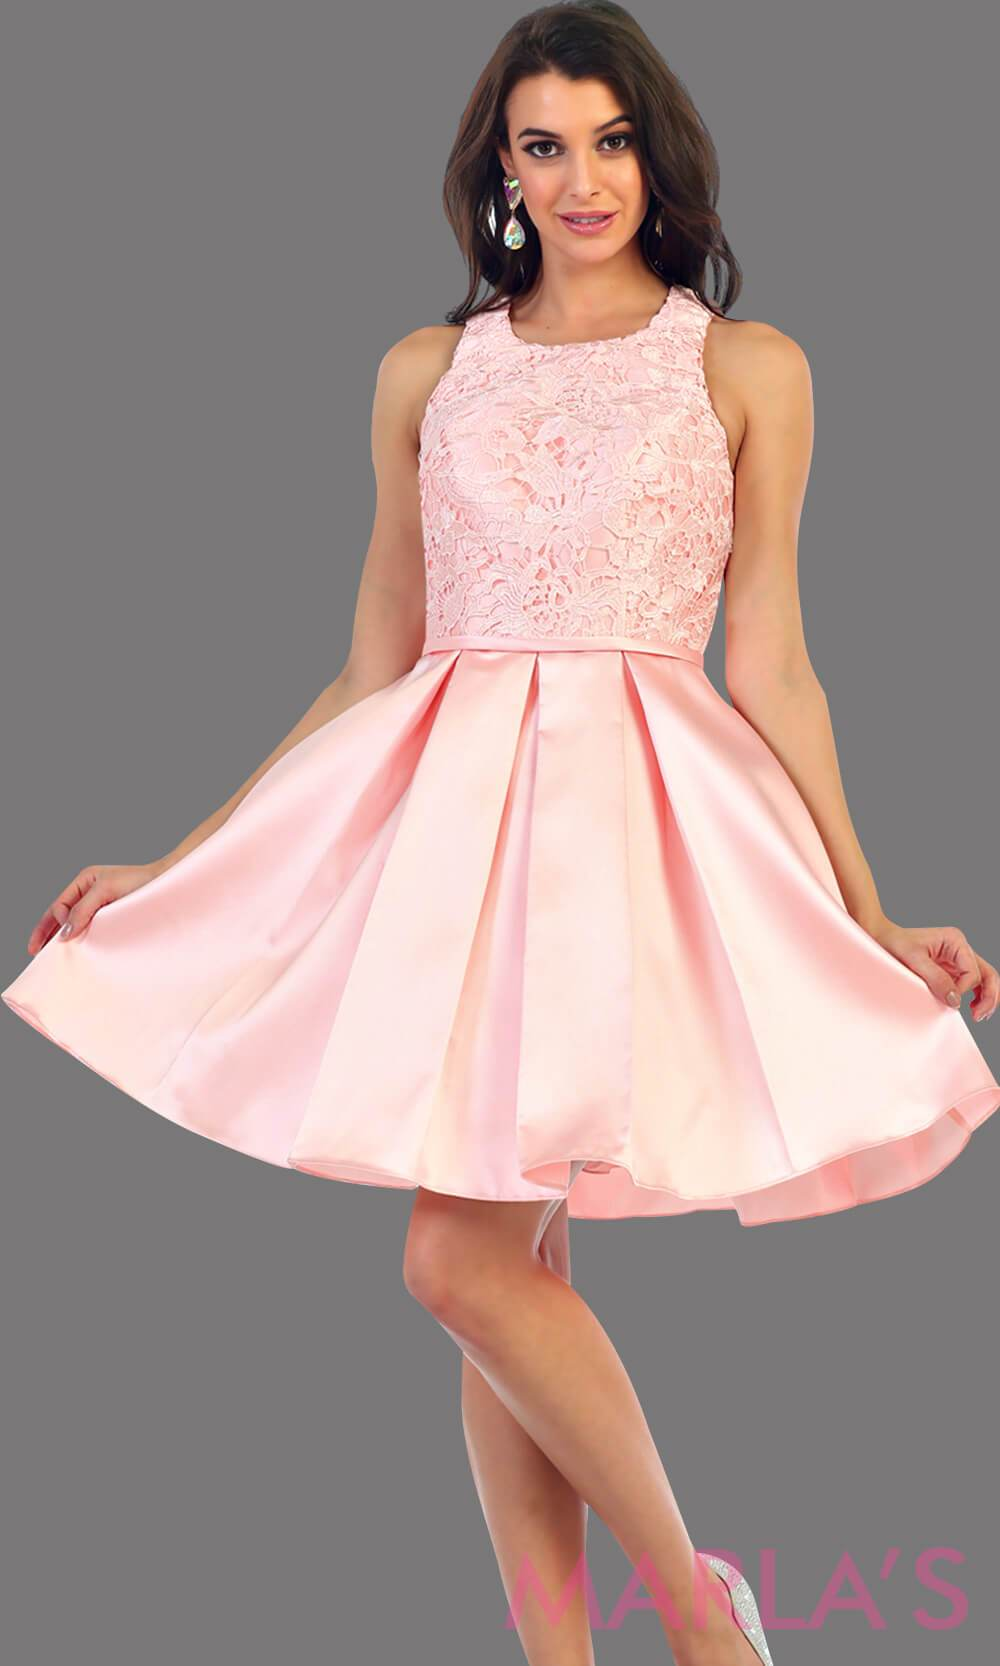 1463-Short taffeta pink dress with lace bodice. This blush grade 8 grad dress has a high neck and built in cups. Perfect for confirmation, graduation dress, wedding guest dress, homecoming, short prom dress, and damas. Avail in plus sizes